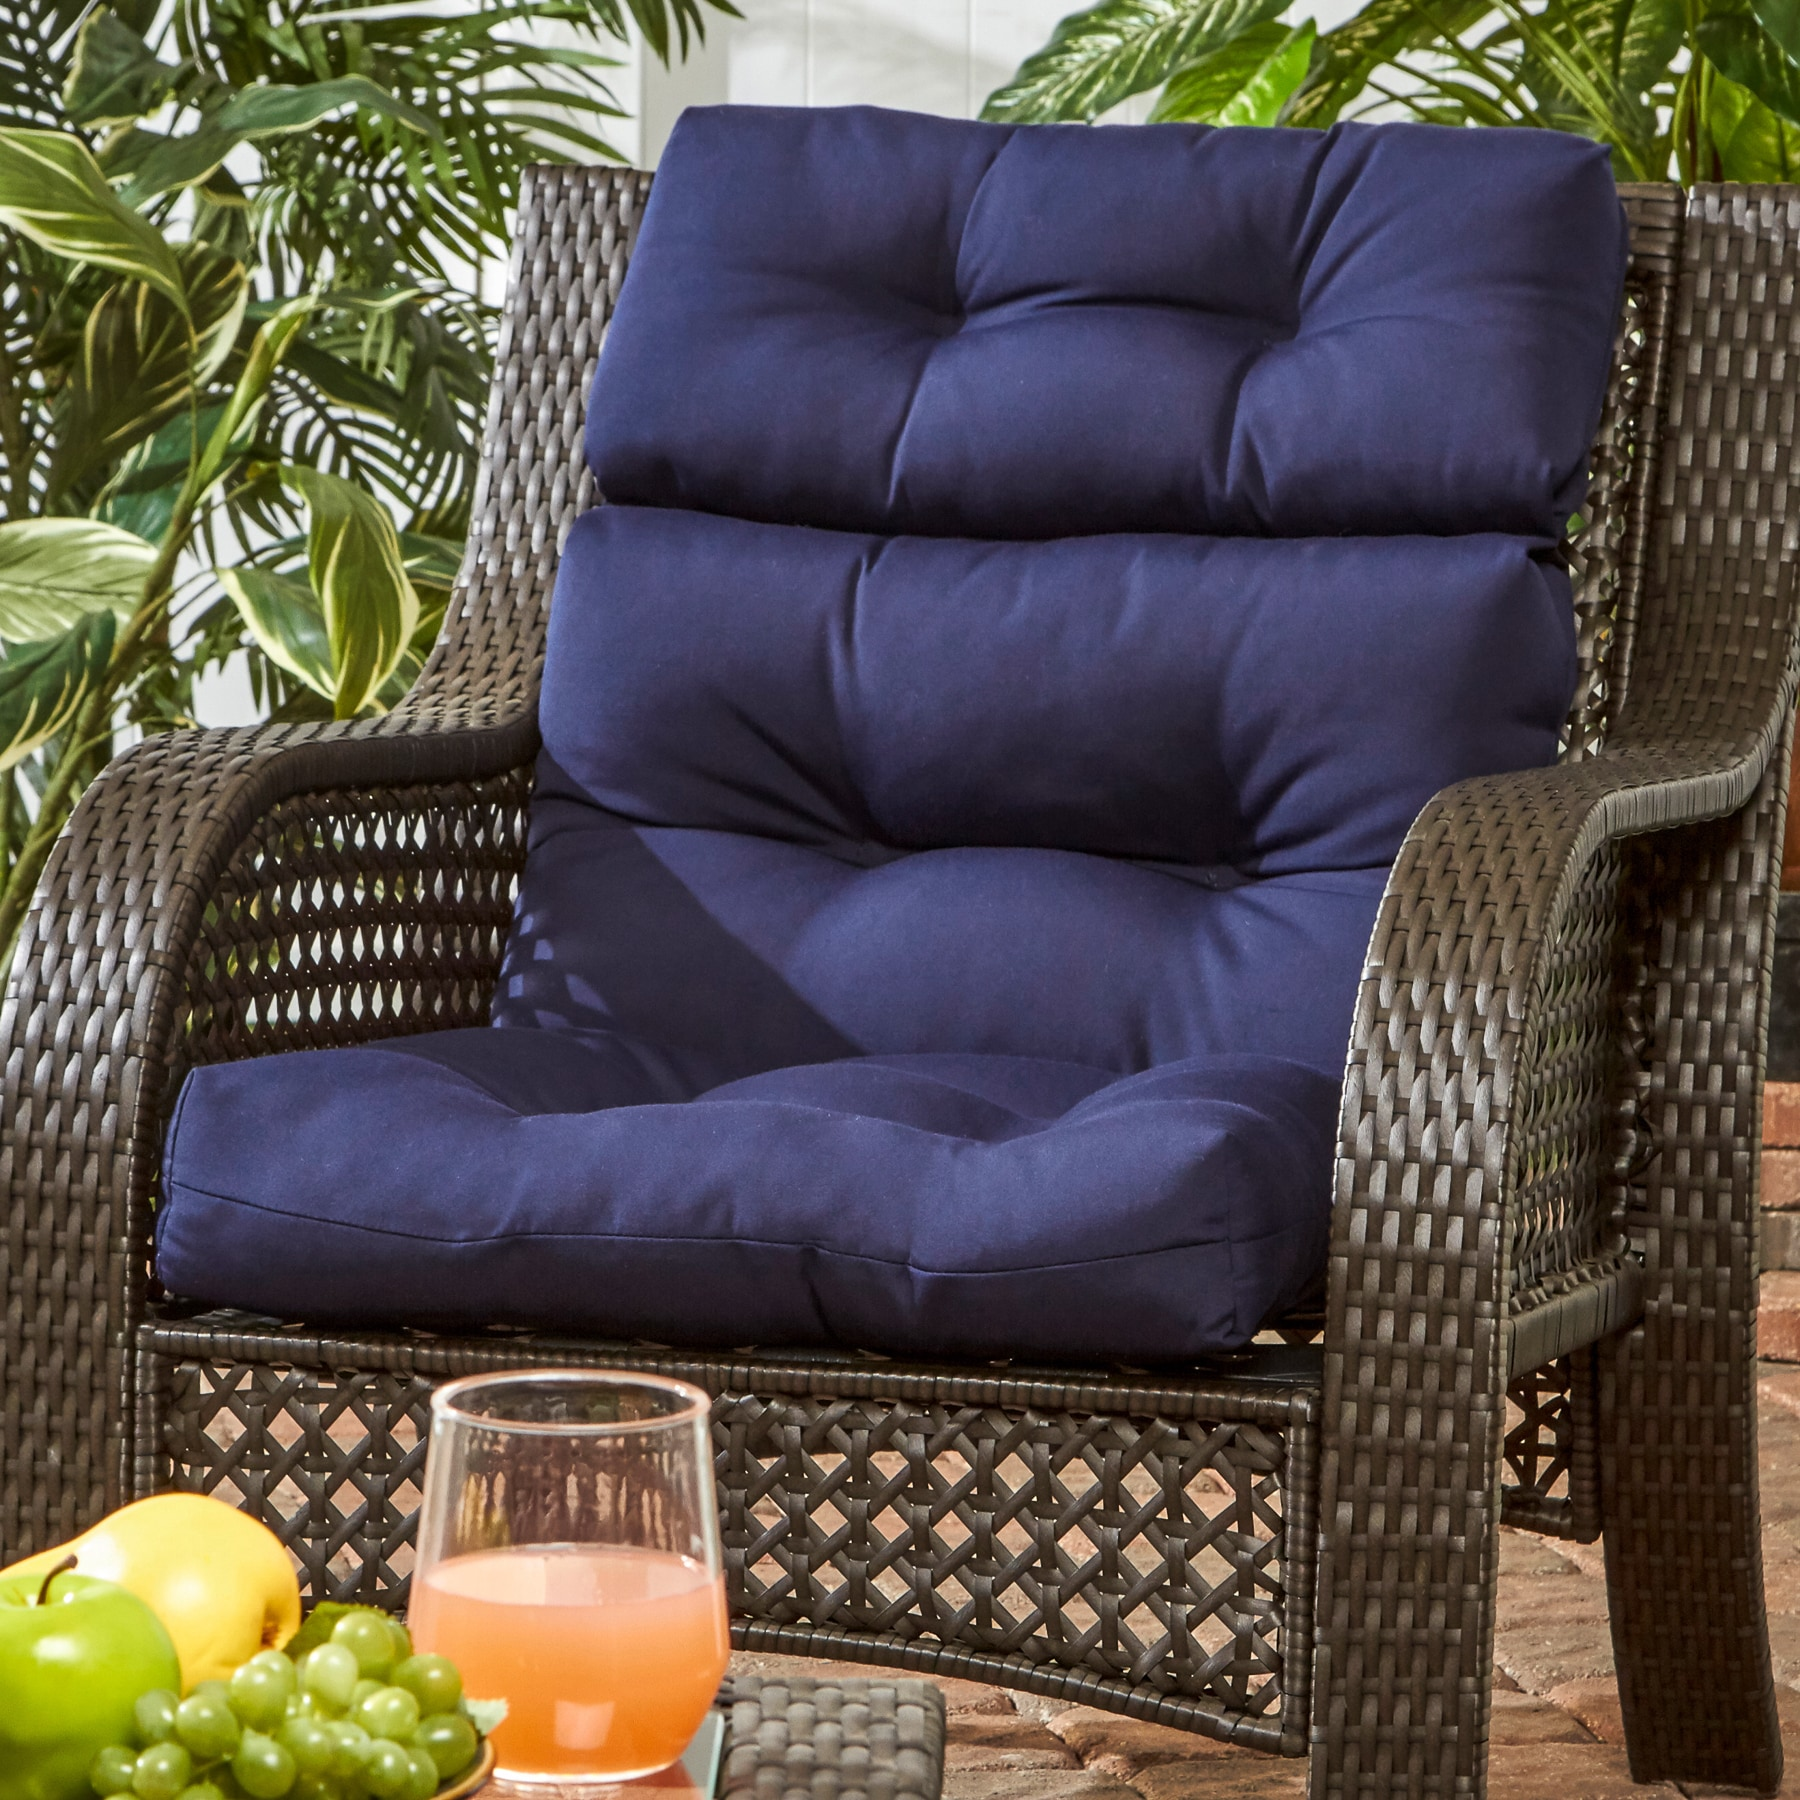 Greendale Home Fashions Outdoor High Back Chair Cushion   22w X 44l